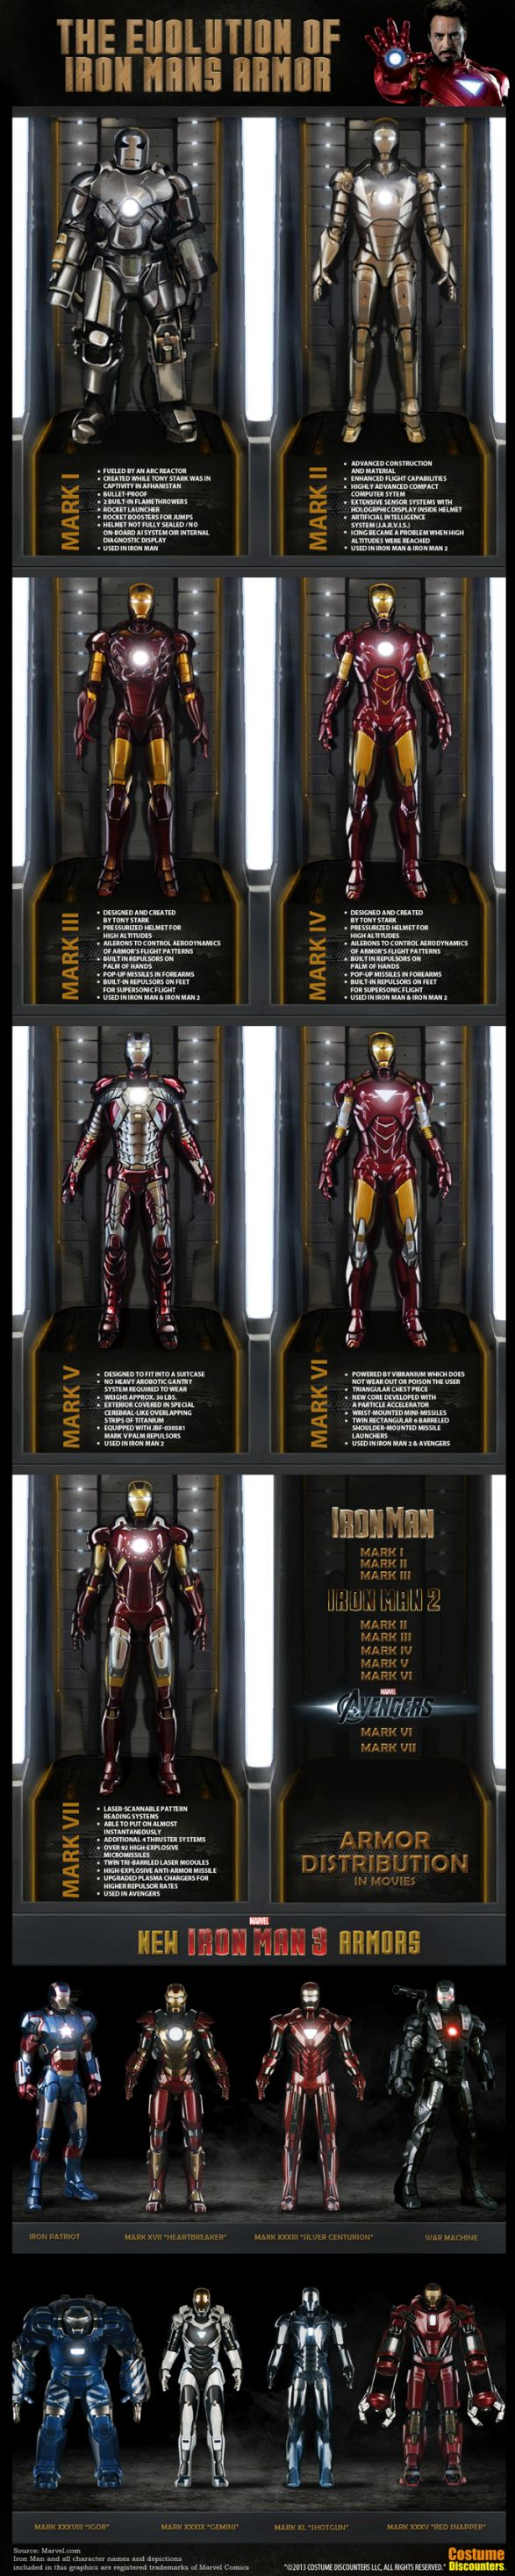 Iron Man Suits of Armor